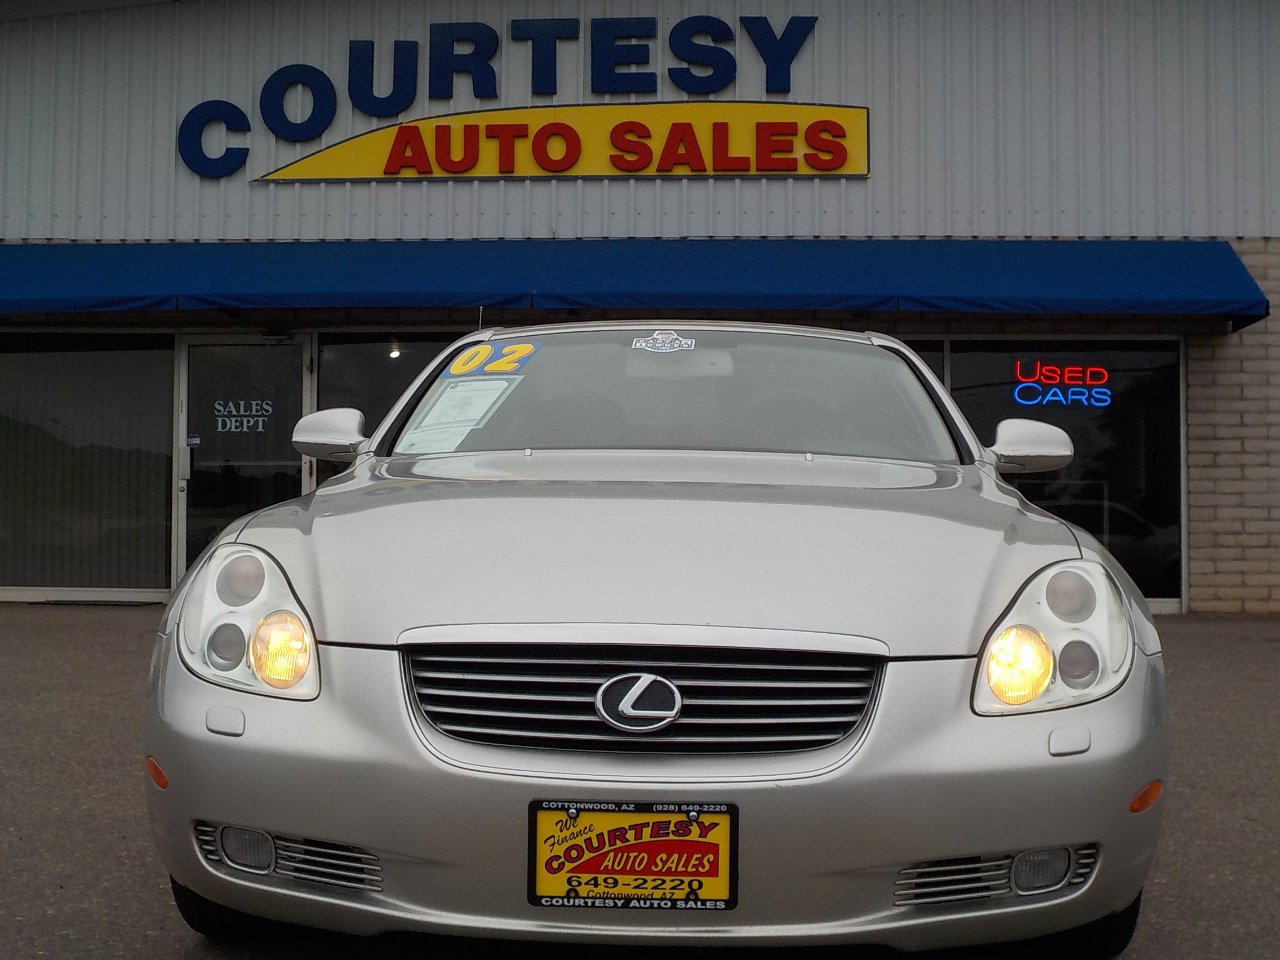 Courtesy Auto Sales >> Courtesy Auto Sales Az Cottonwood Az 86326 Car Dealership And